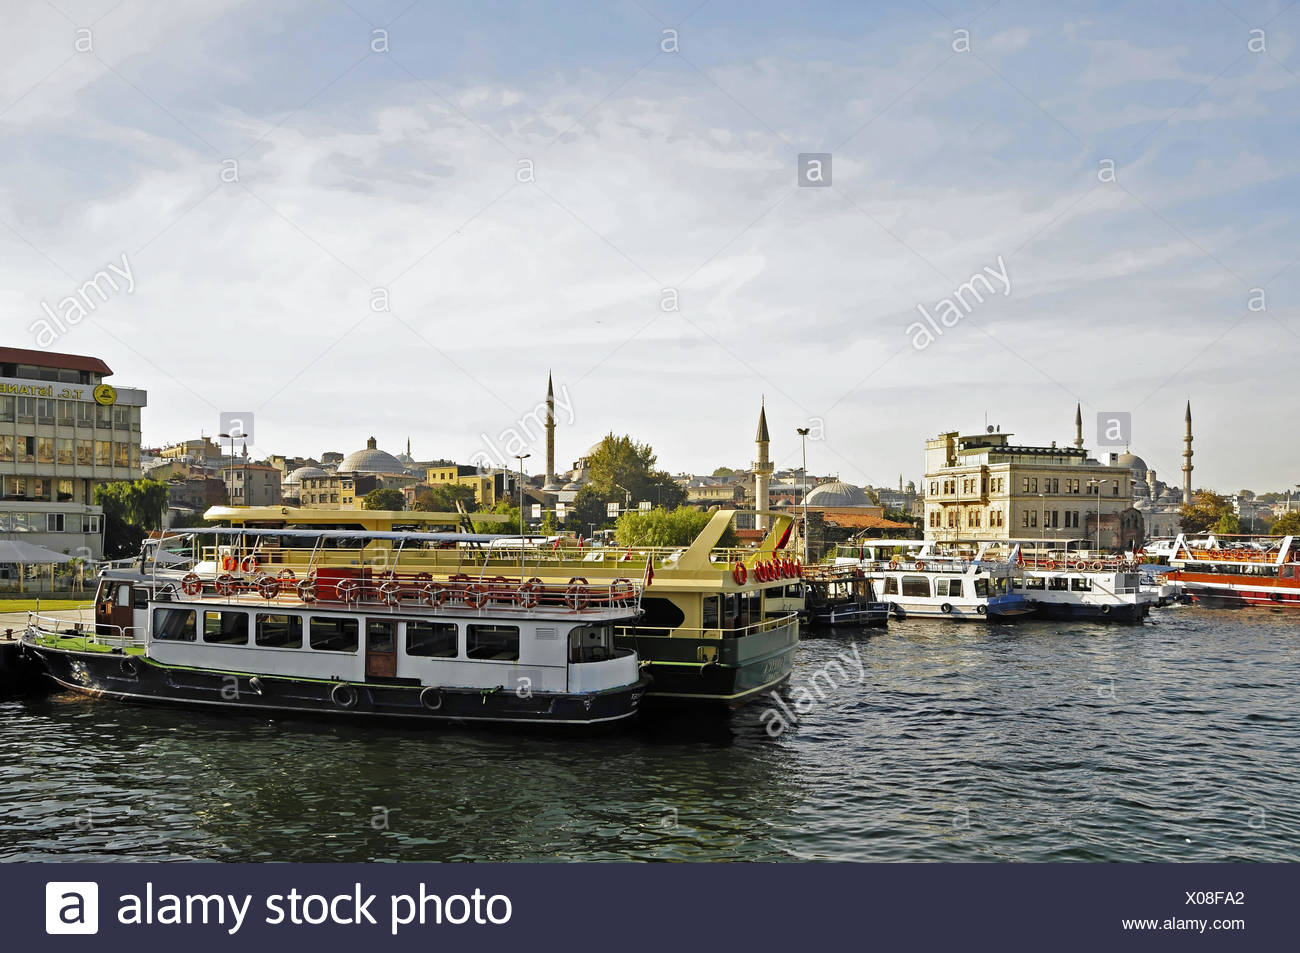 The Eminönü with its ferry terminals - Stock Image